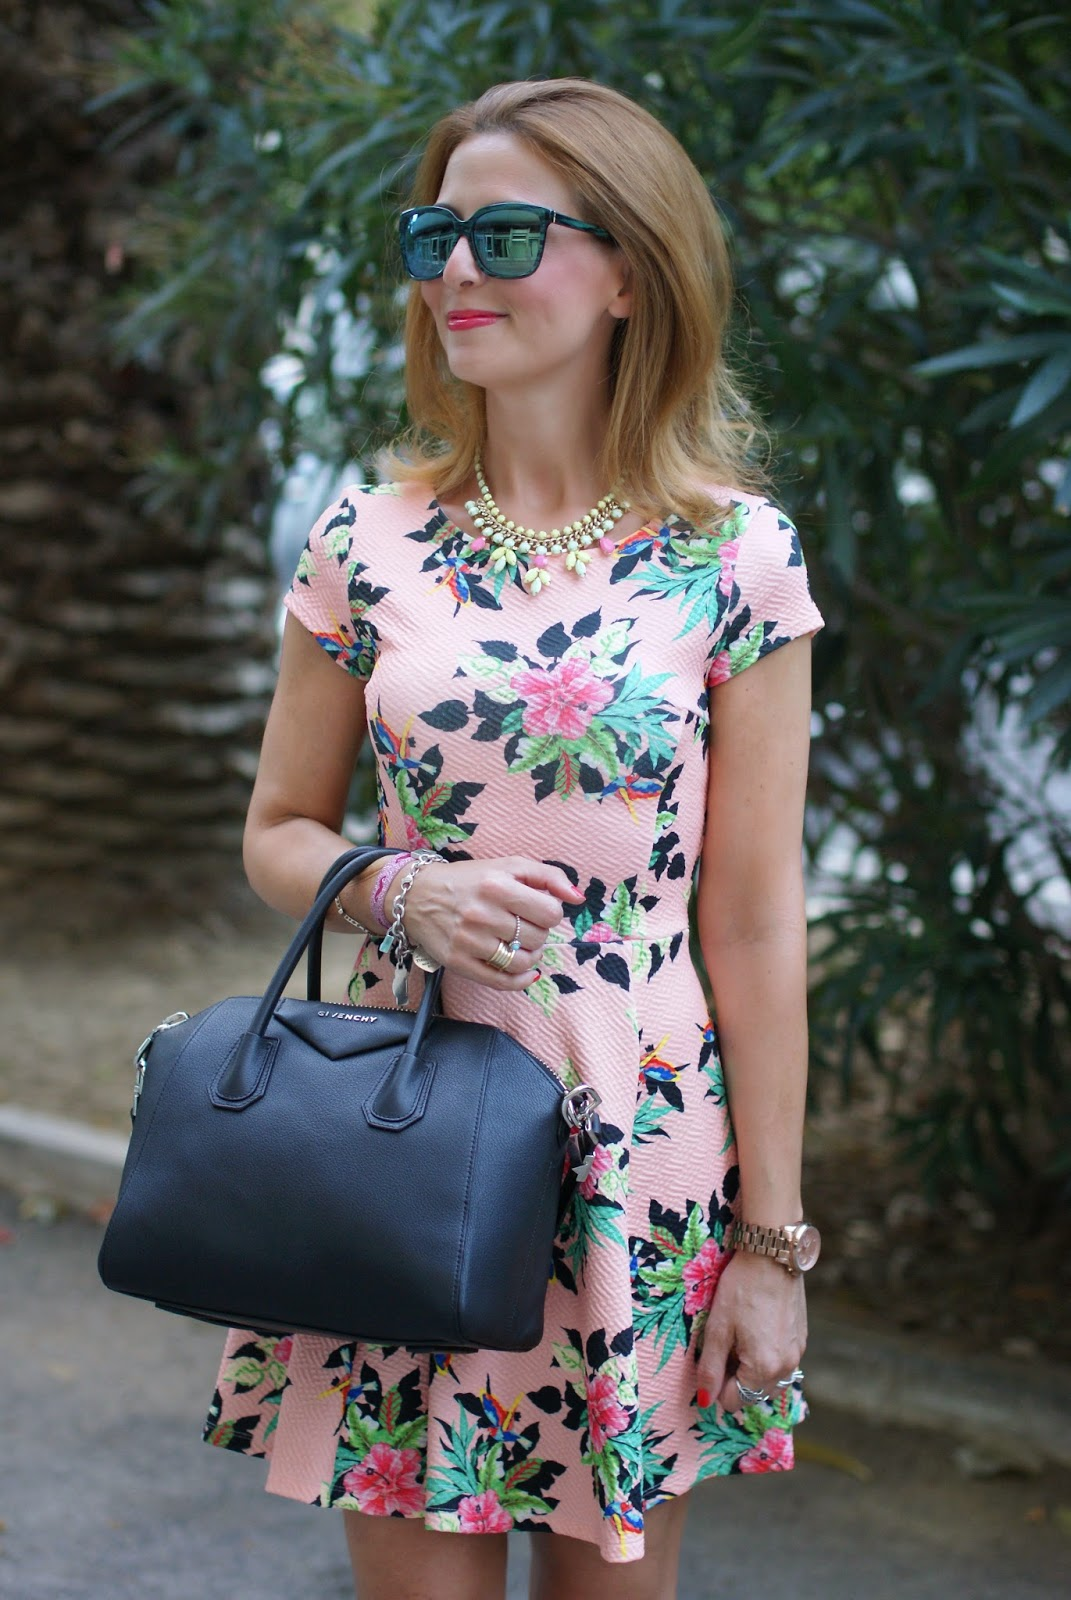 hypeglass green sunglasses, Givenchy Antigona small, pink floral dress, Fashion and Cookies, fashion blogger